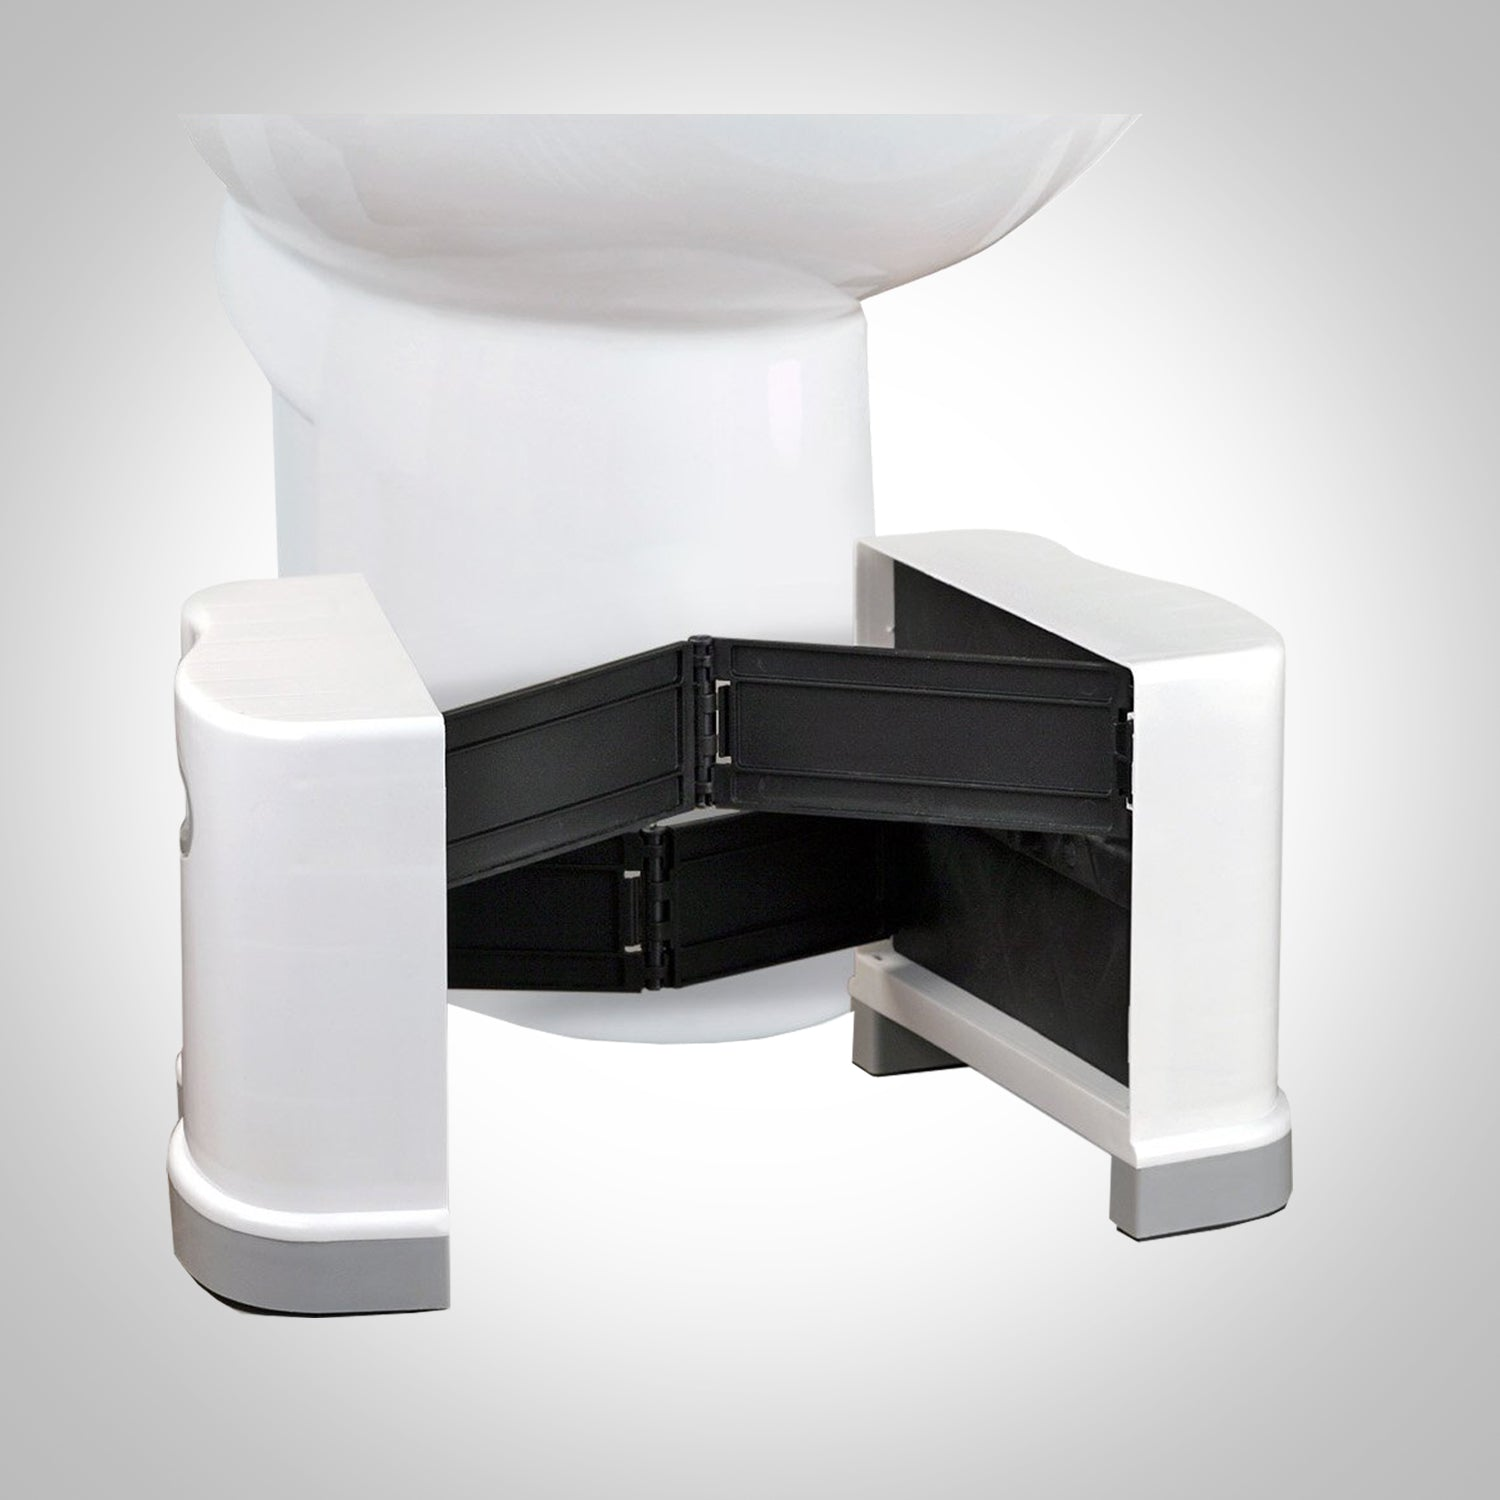 Awesome Squat N Go Extendable Toilet Stool Fits All Toilets 7 Cjindustries Chair Design For Home Cjindustriesco